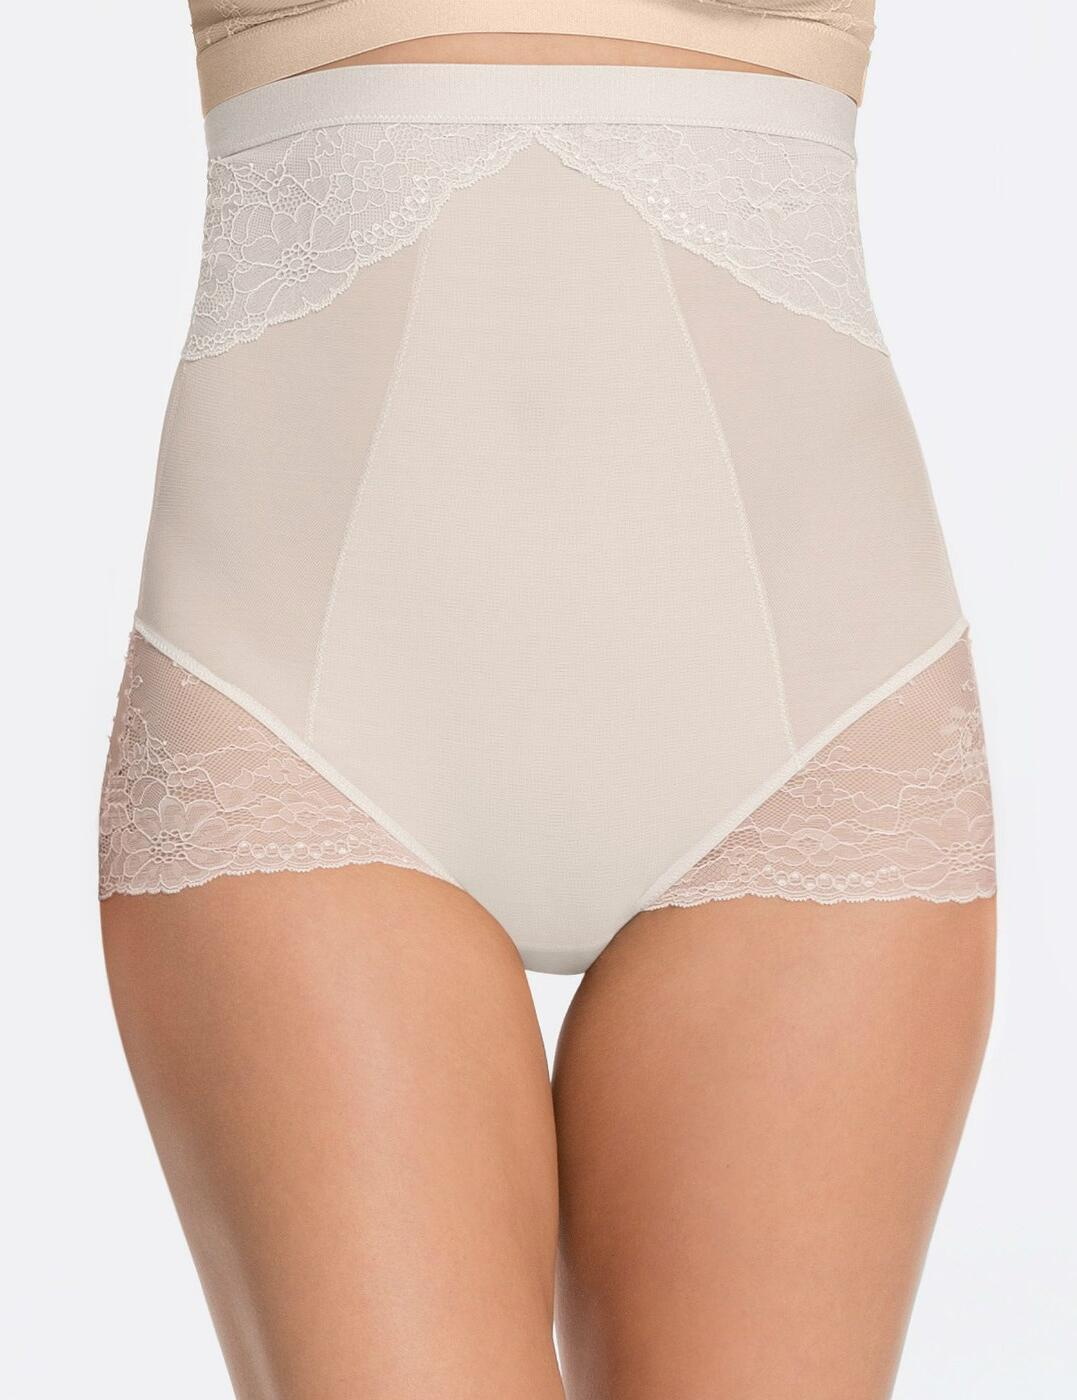 10121R Spanx Spotlight On Lace High Waist Brief - 10121R Clean White